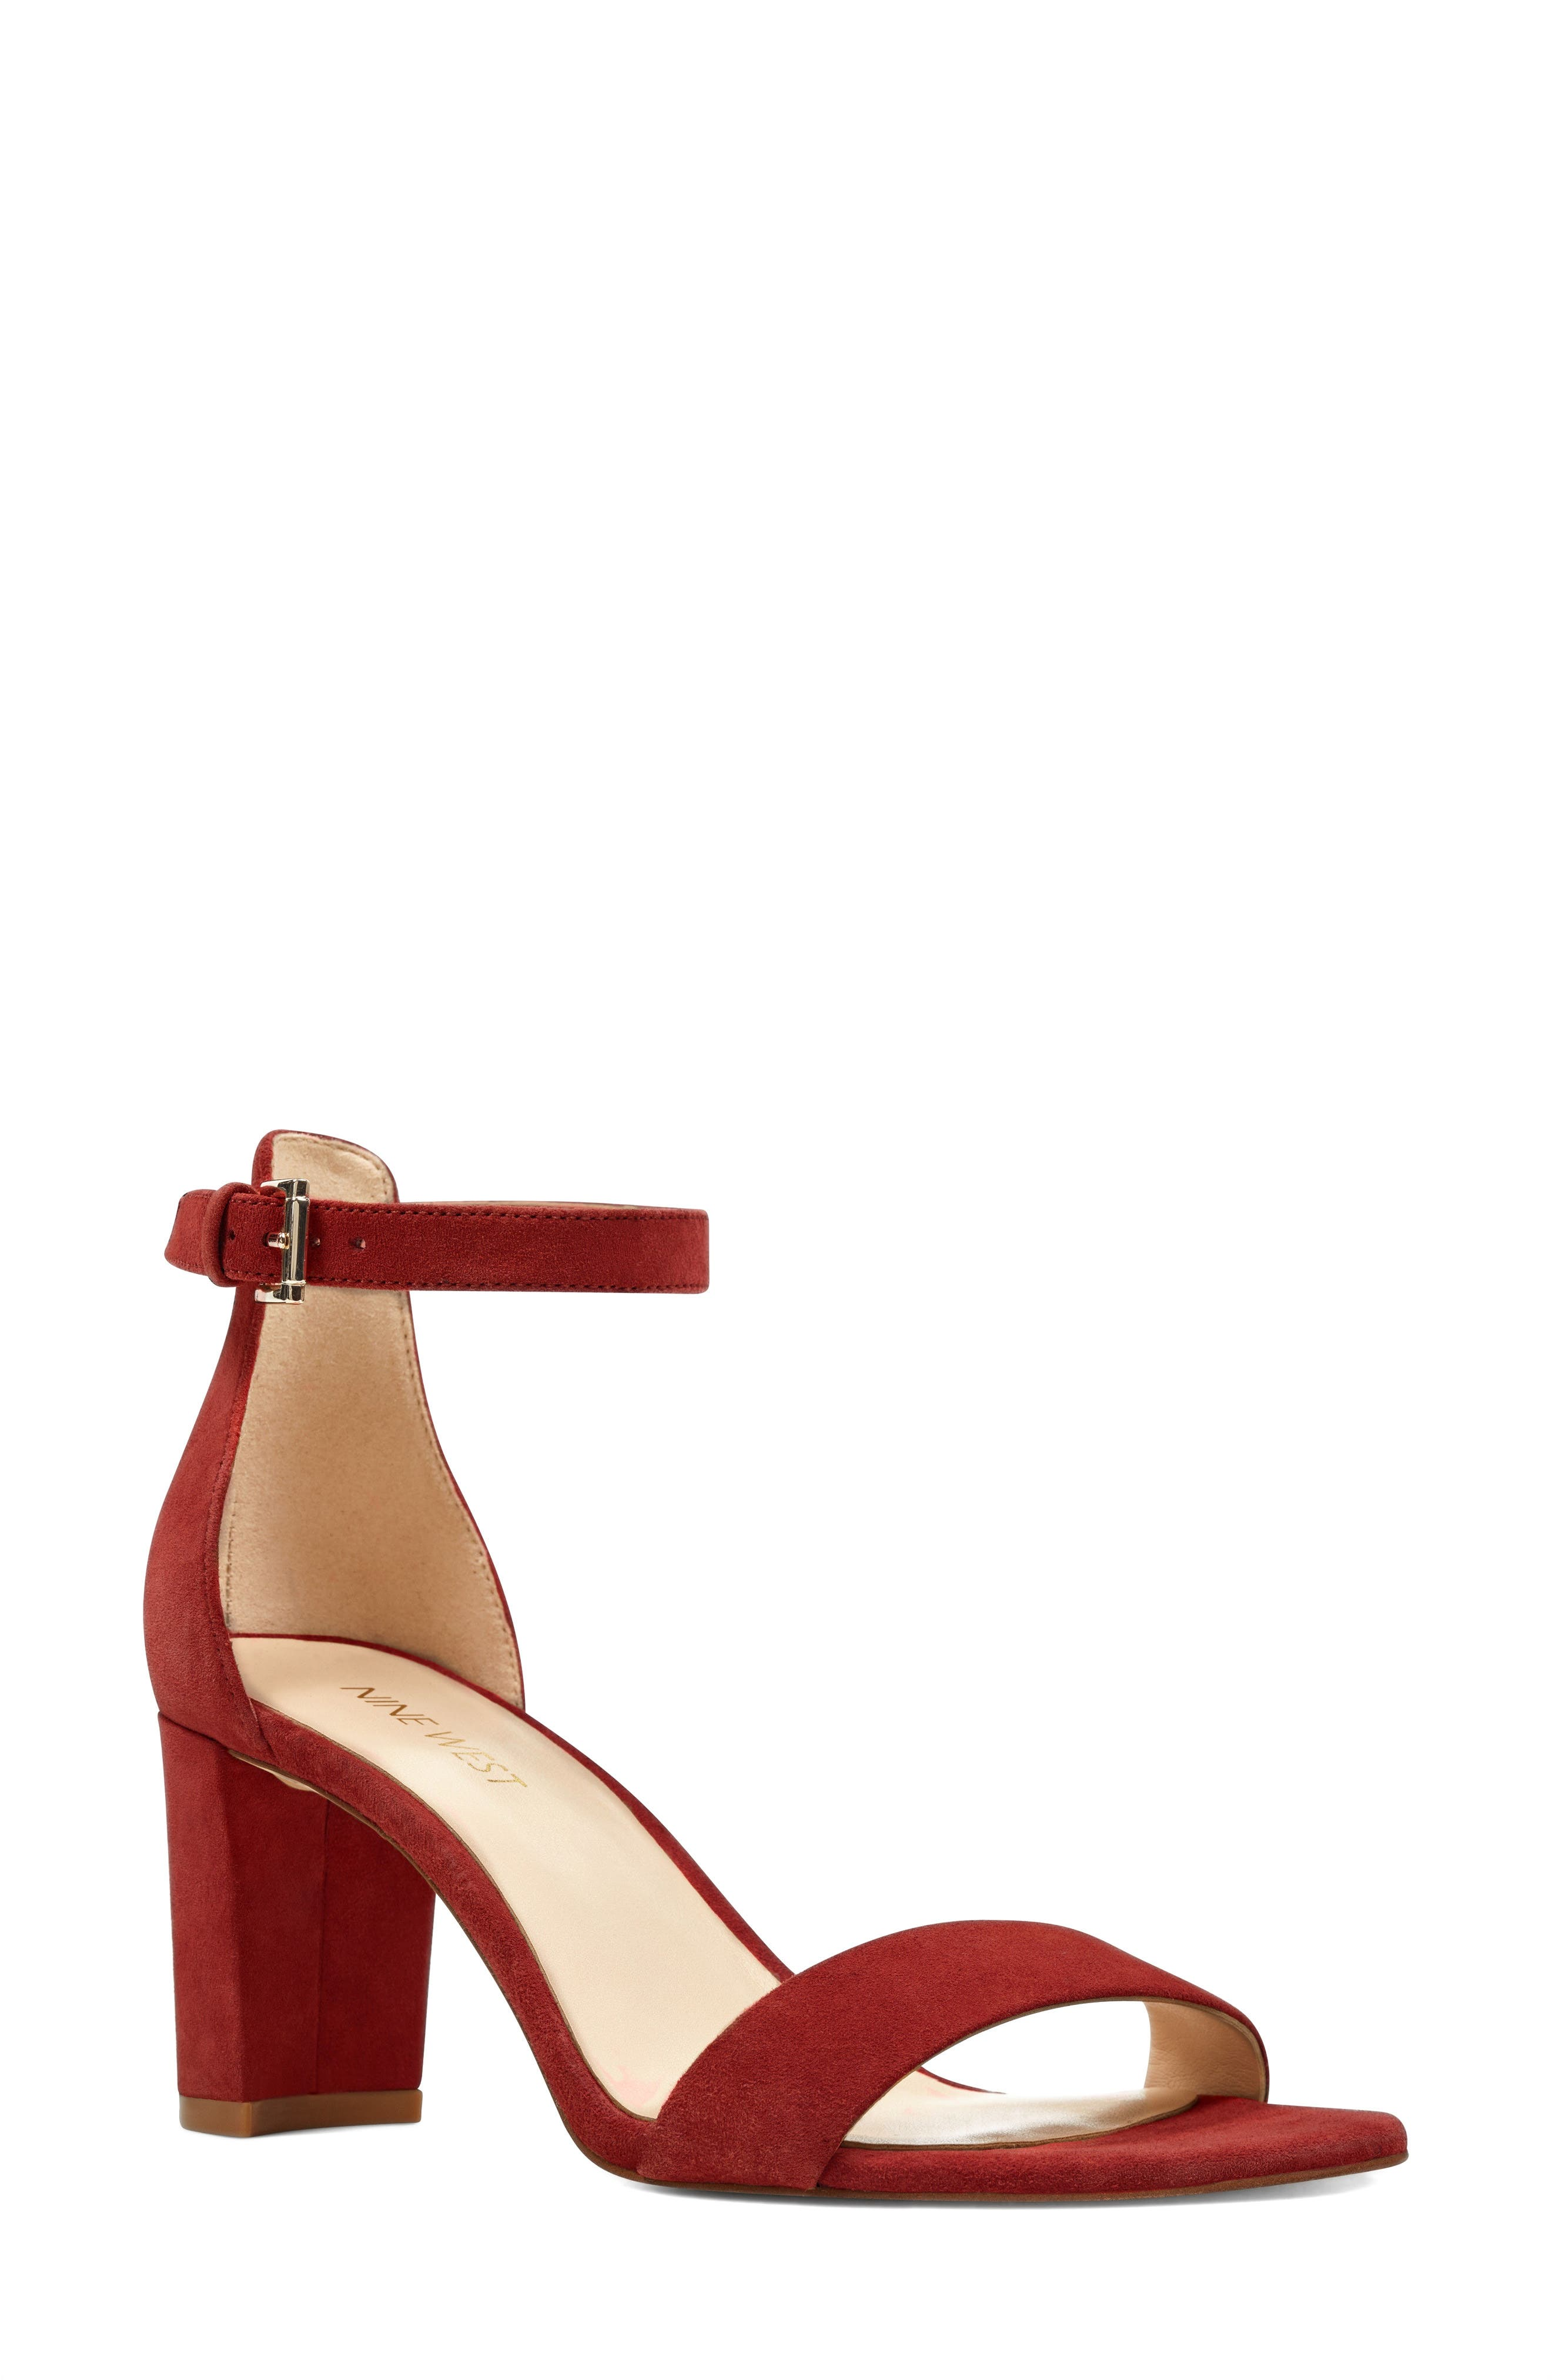 Pruce Ankle Strap Sandal,                             Main thumbnail 1, color,                             Red Suede